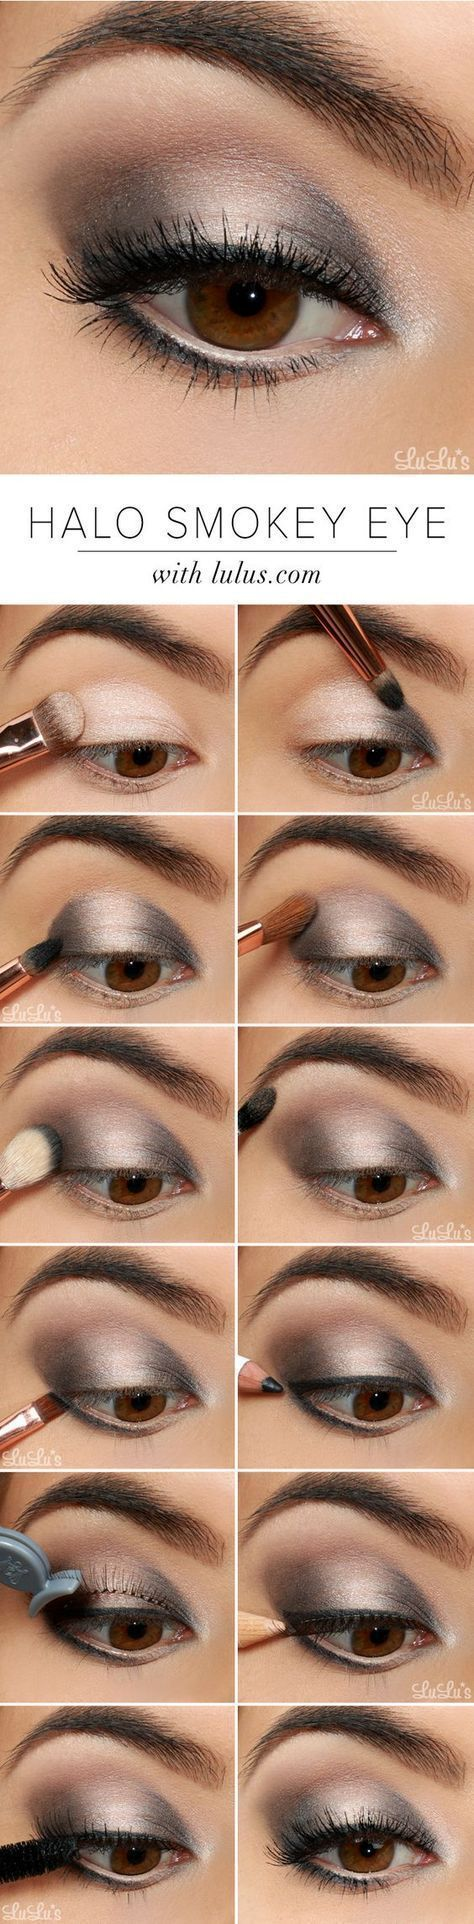 11 Simple Step-by-Step Tutorials for Beginners // # Beginners … #beginner #simple #step #tutorials